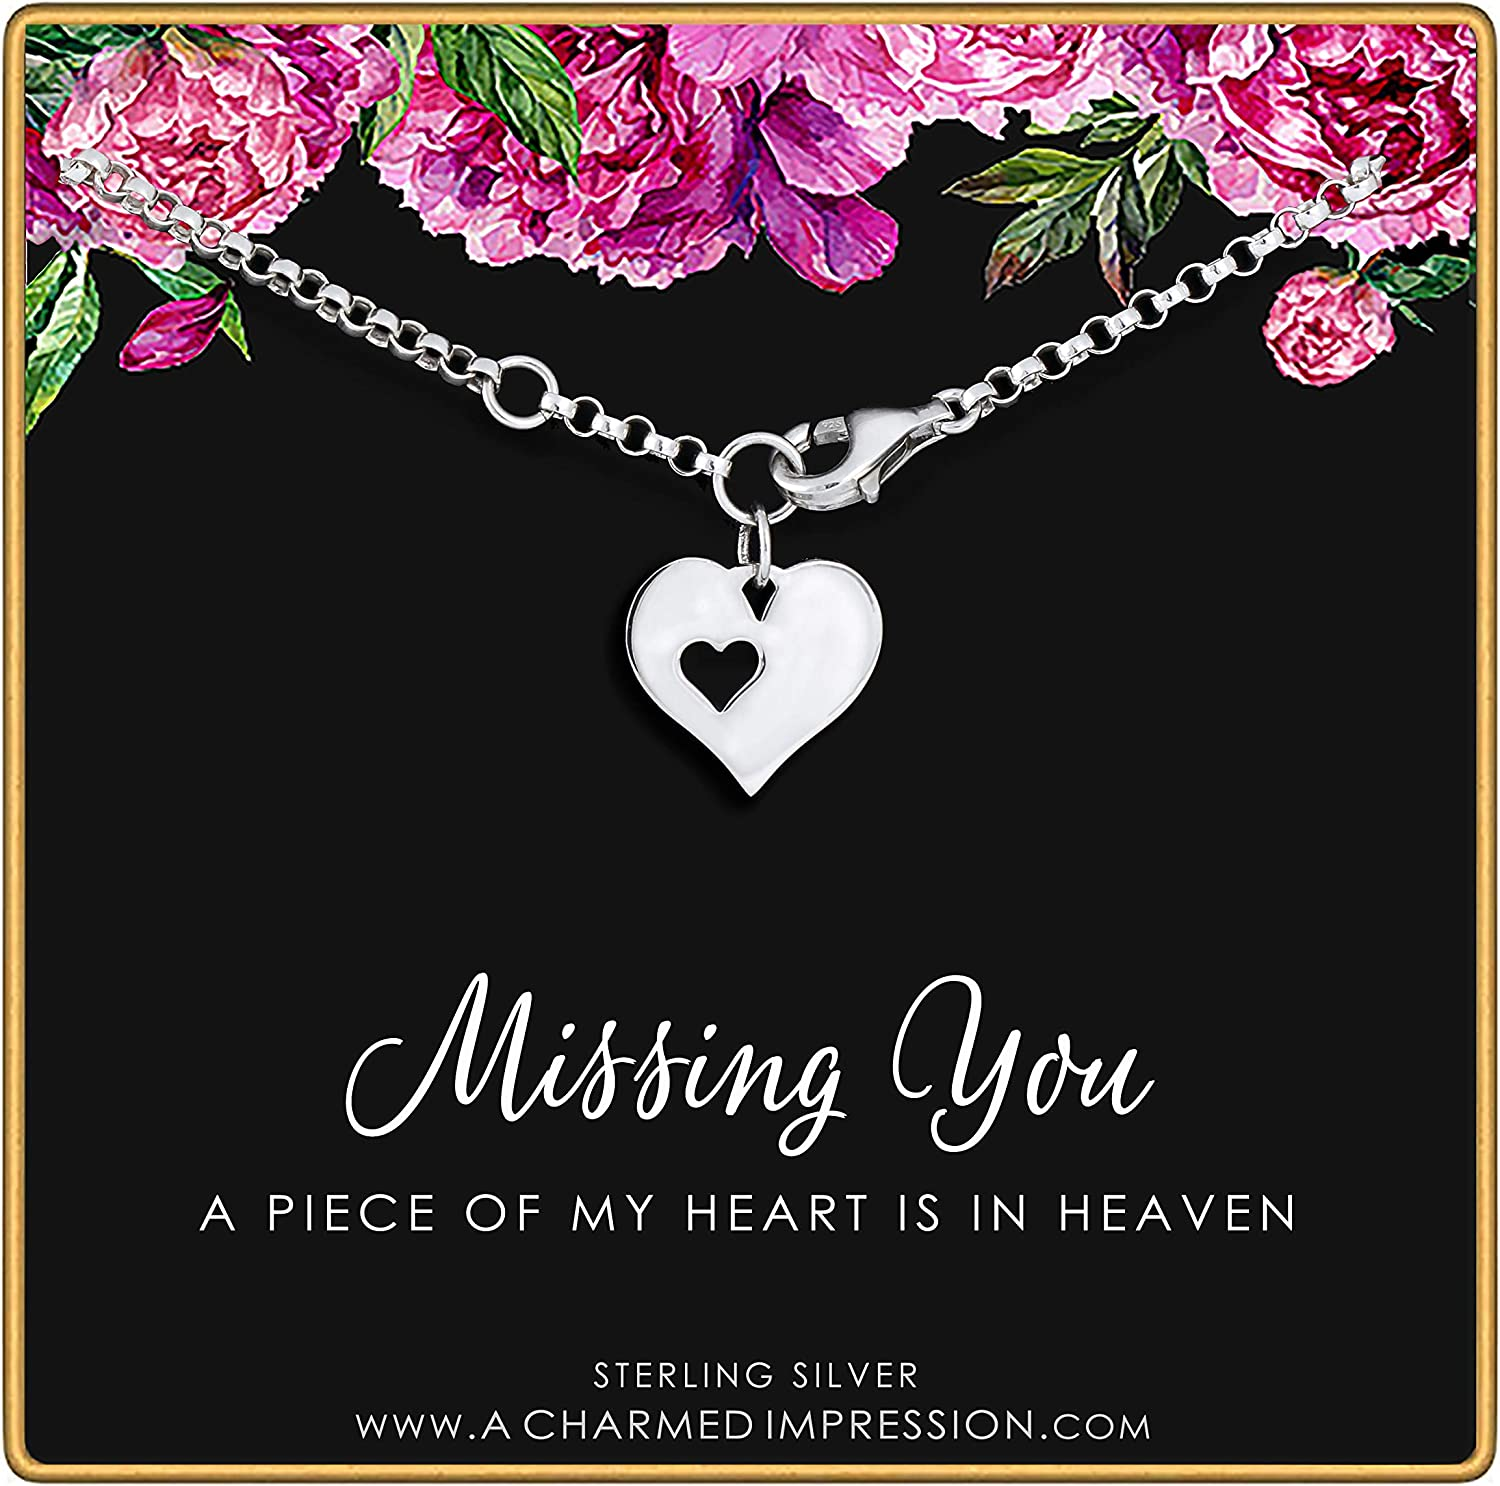 Sterling Silver Remembrance Charm Bracelet Ranking TOP10 Missing Price reduction You A •